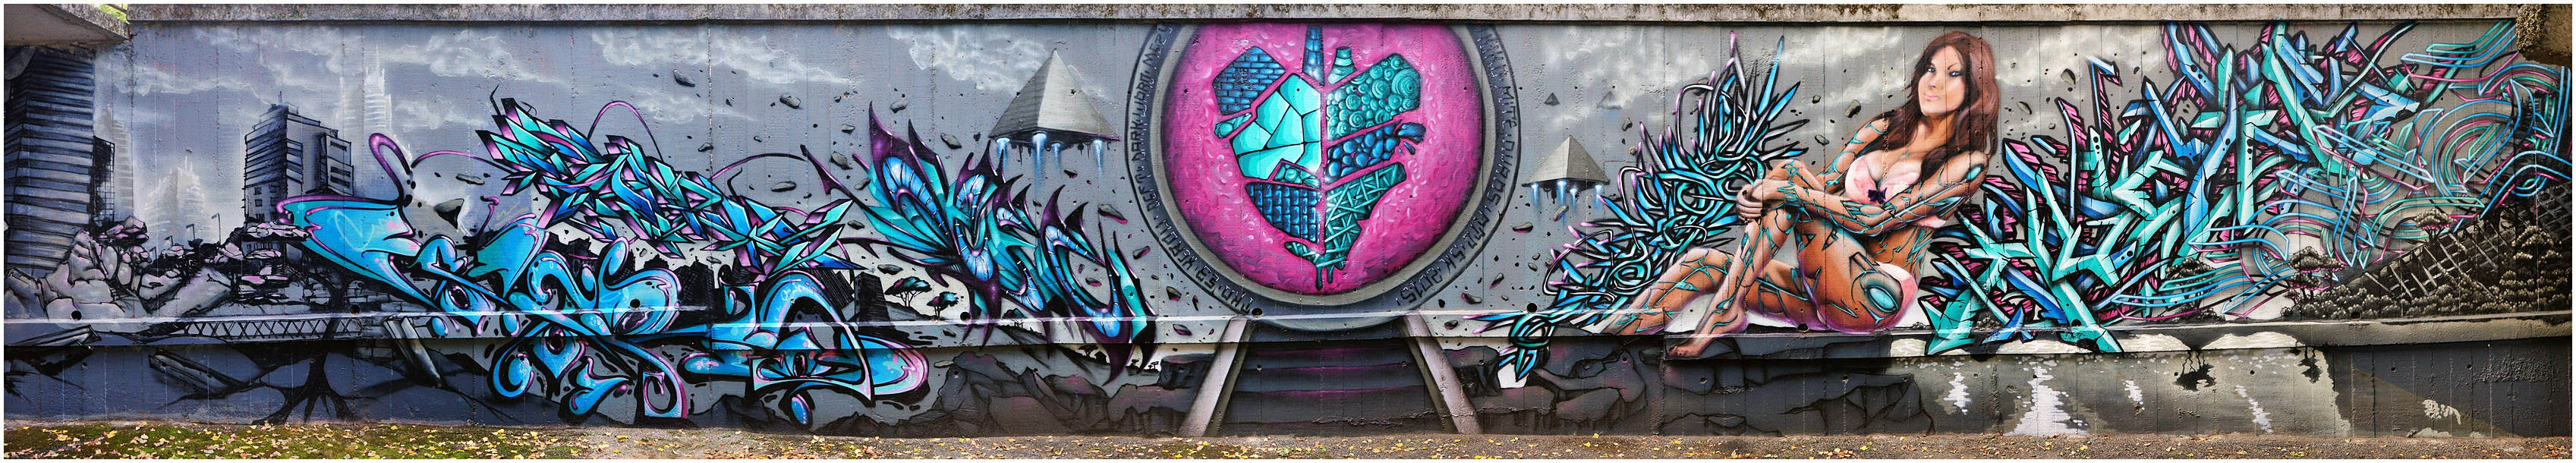 Fresque Stargate - Toulouse - Graffiti